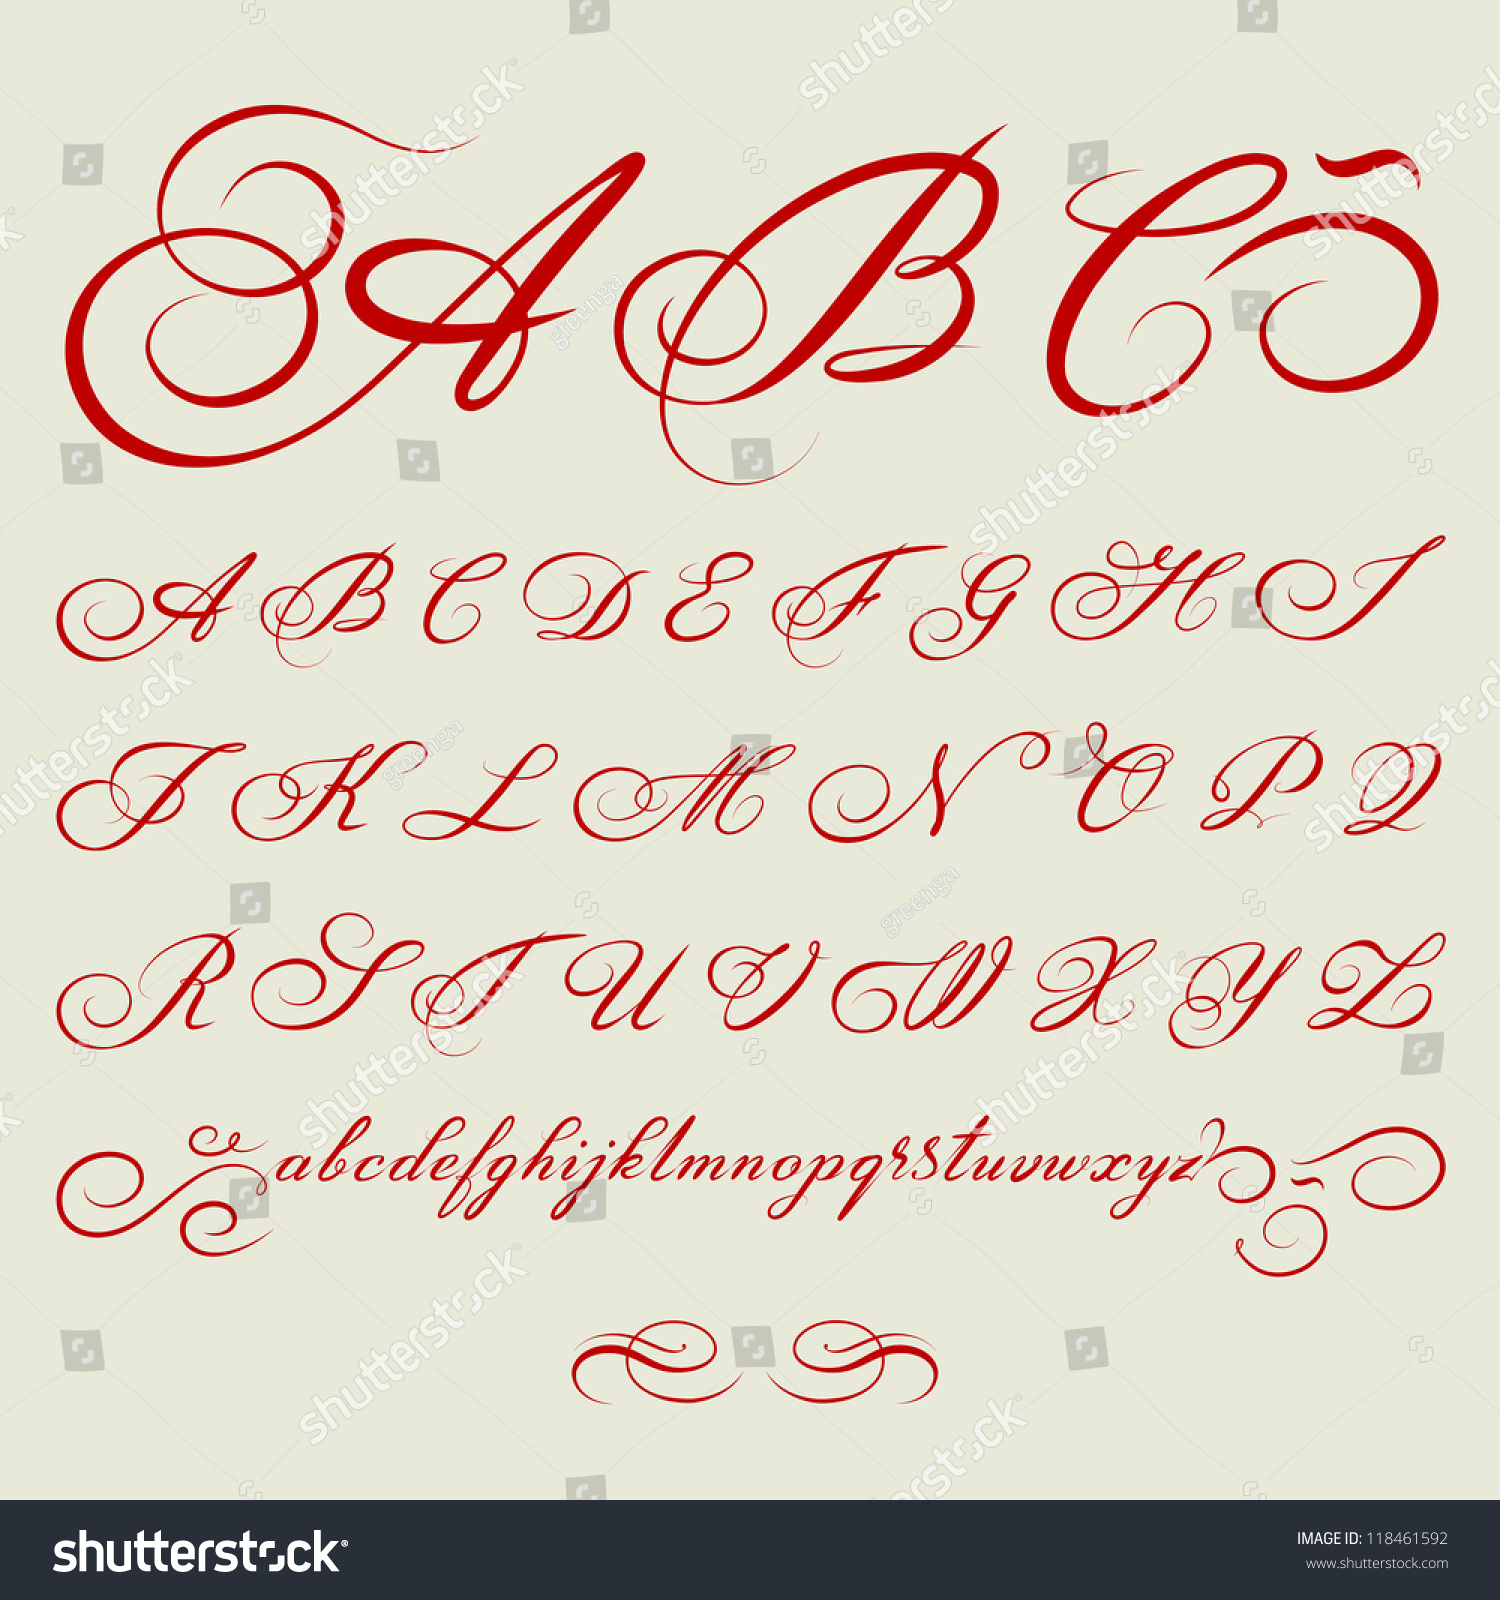 calligraphic Alphabet based on calligraphy masters of the 18th century